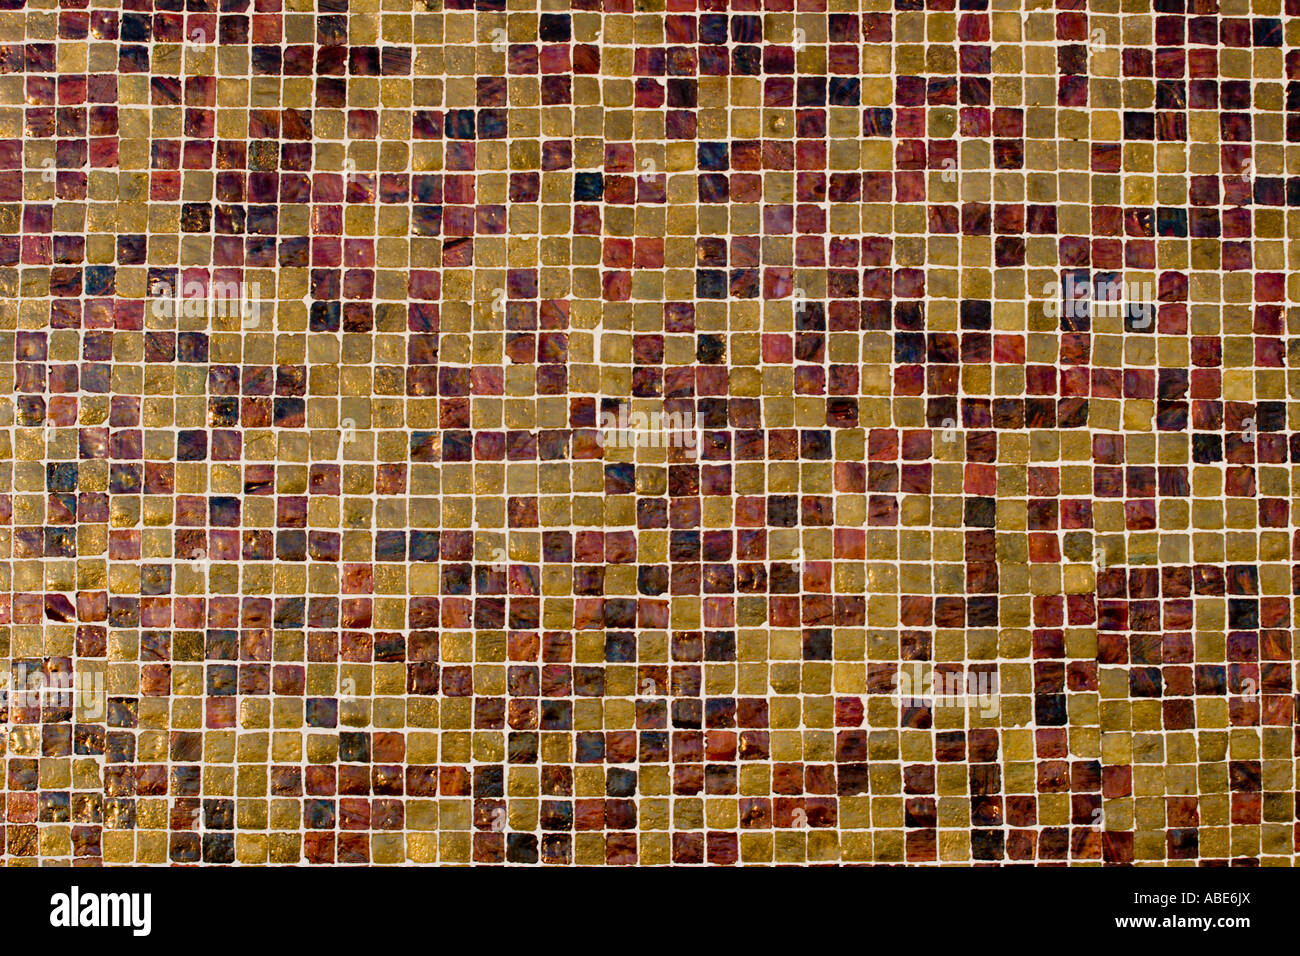 Tile mosaic texture in brown tones - Stock Image